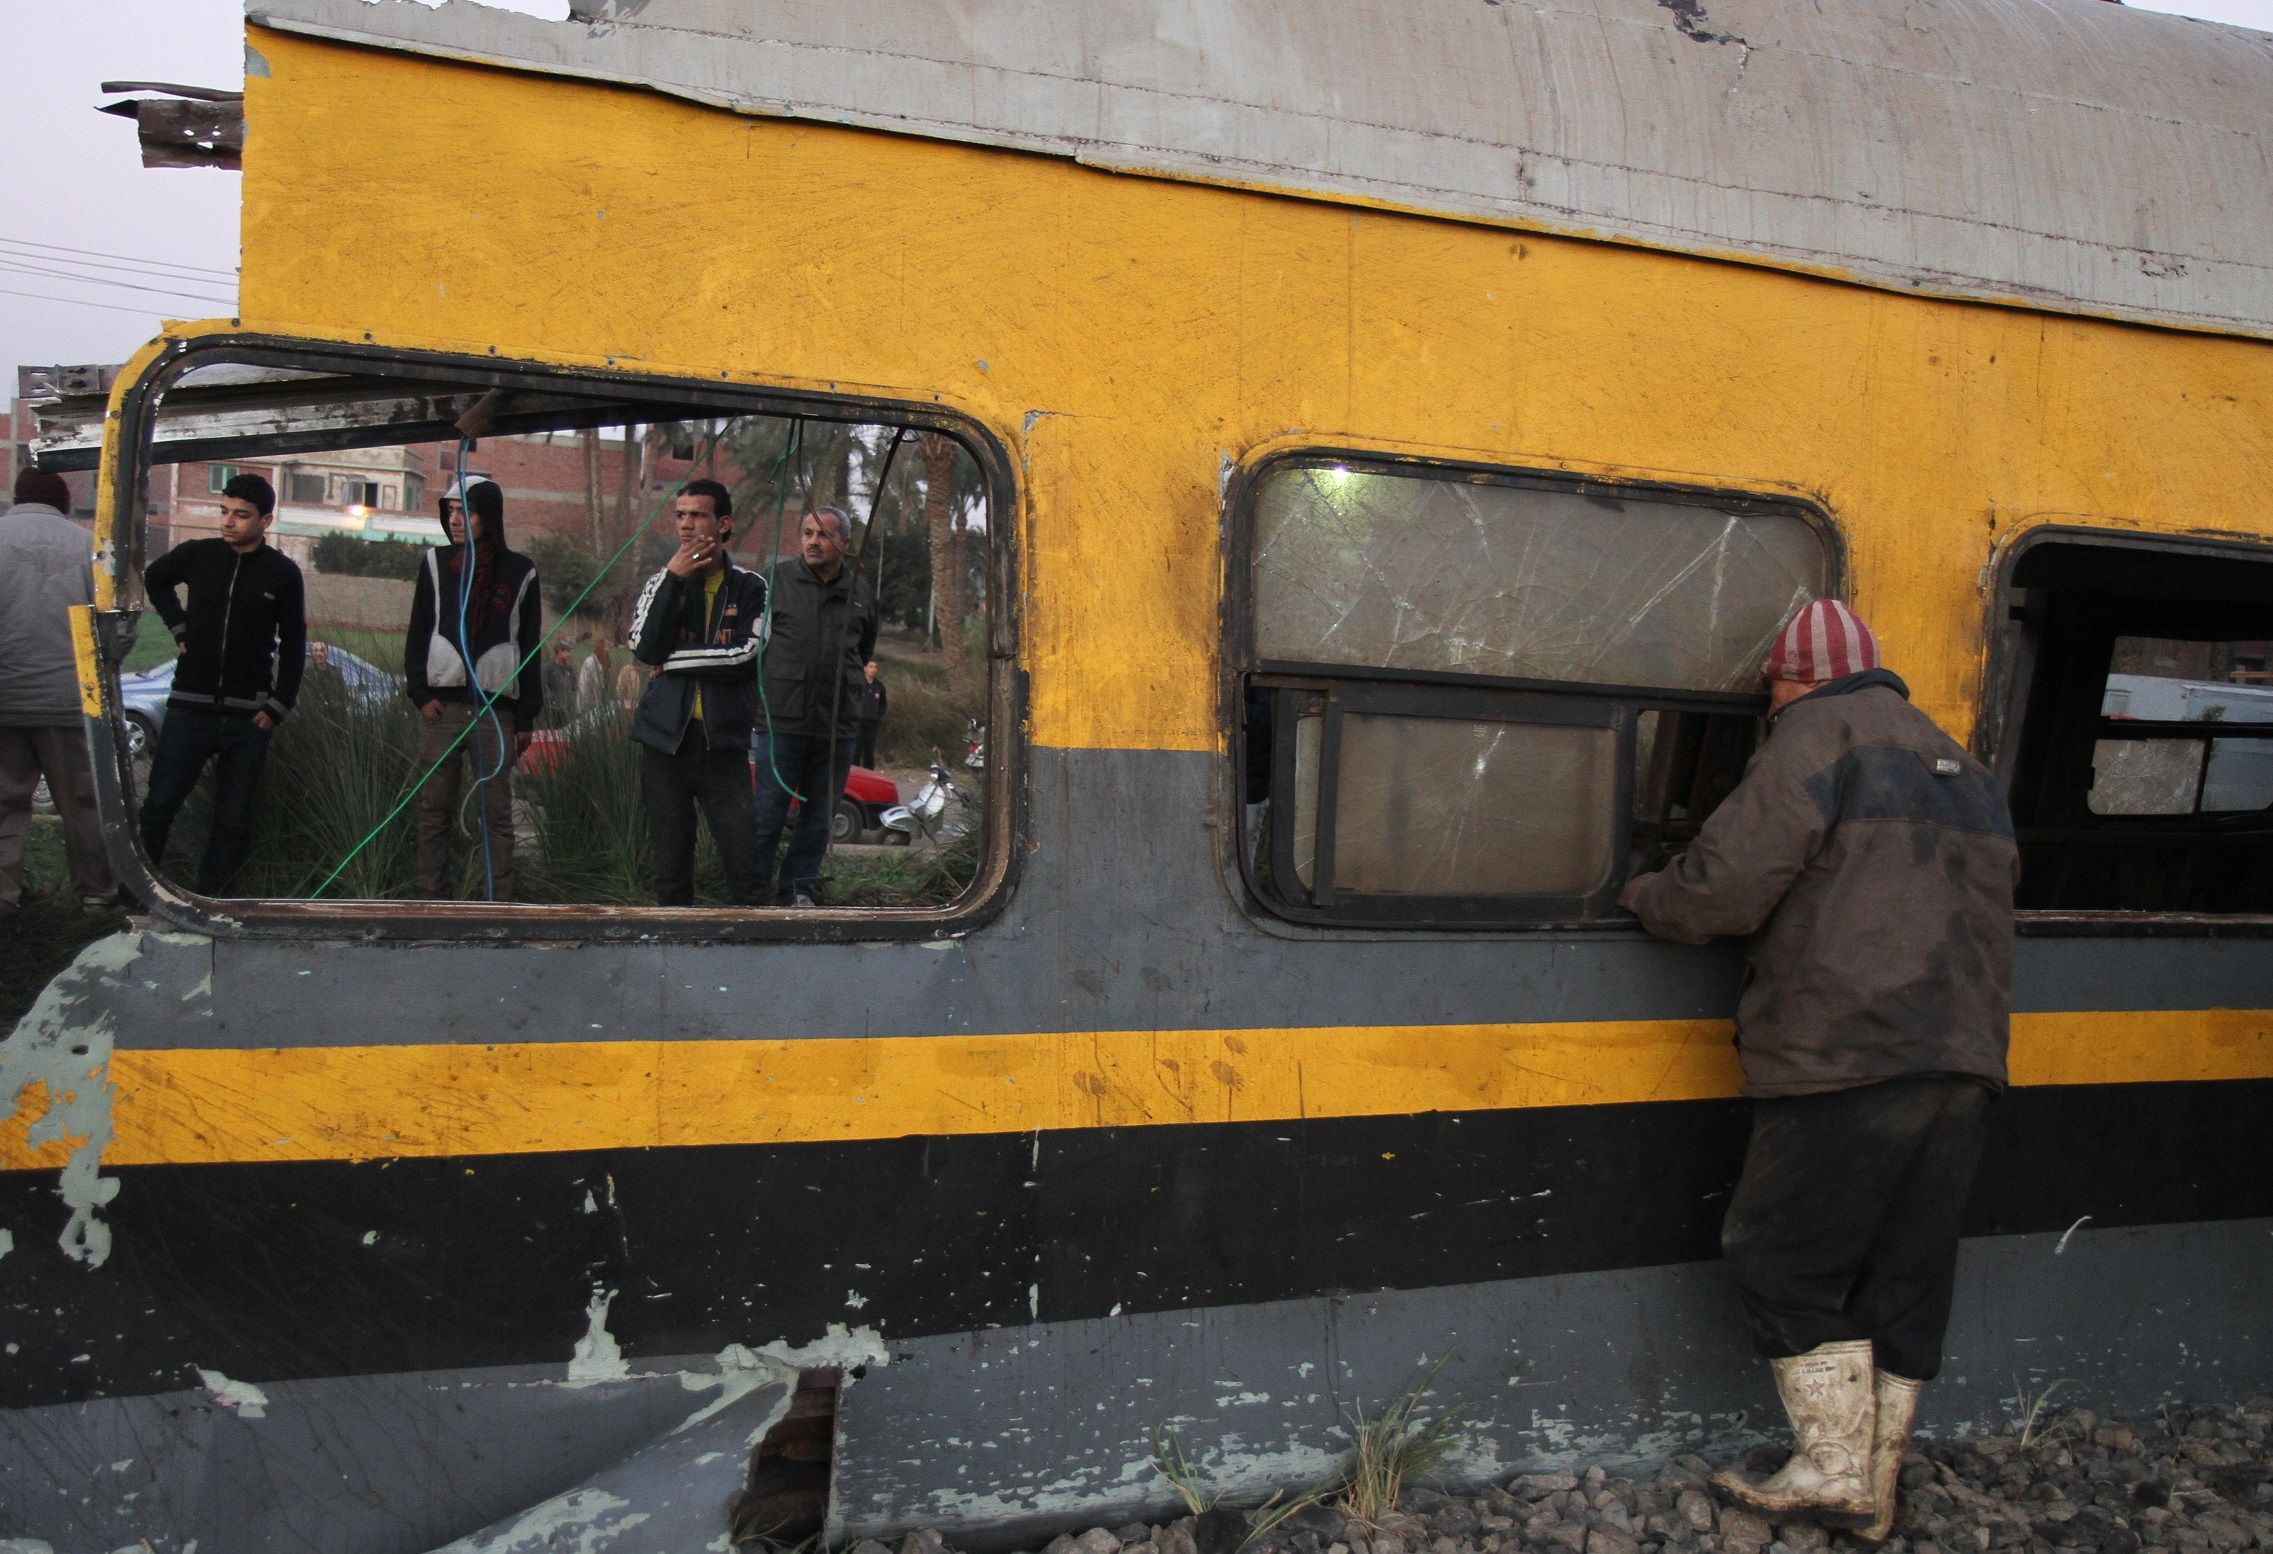 Egypt train collision kills at least 36: ministry